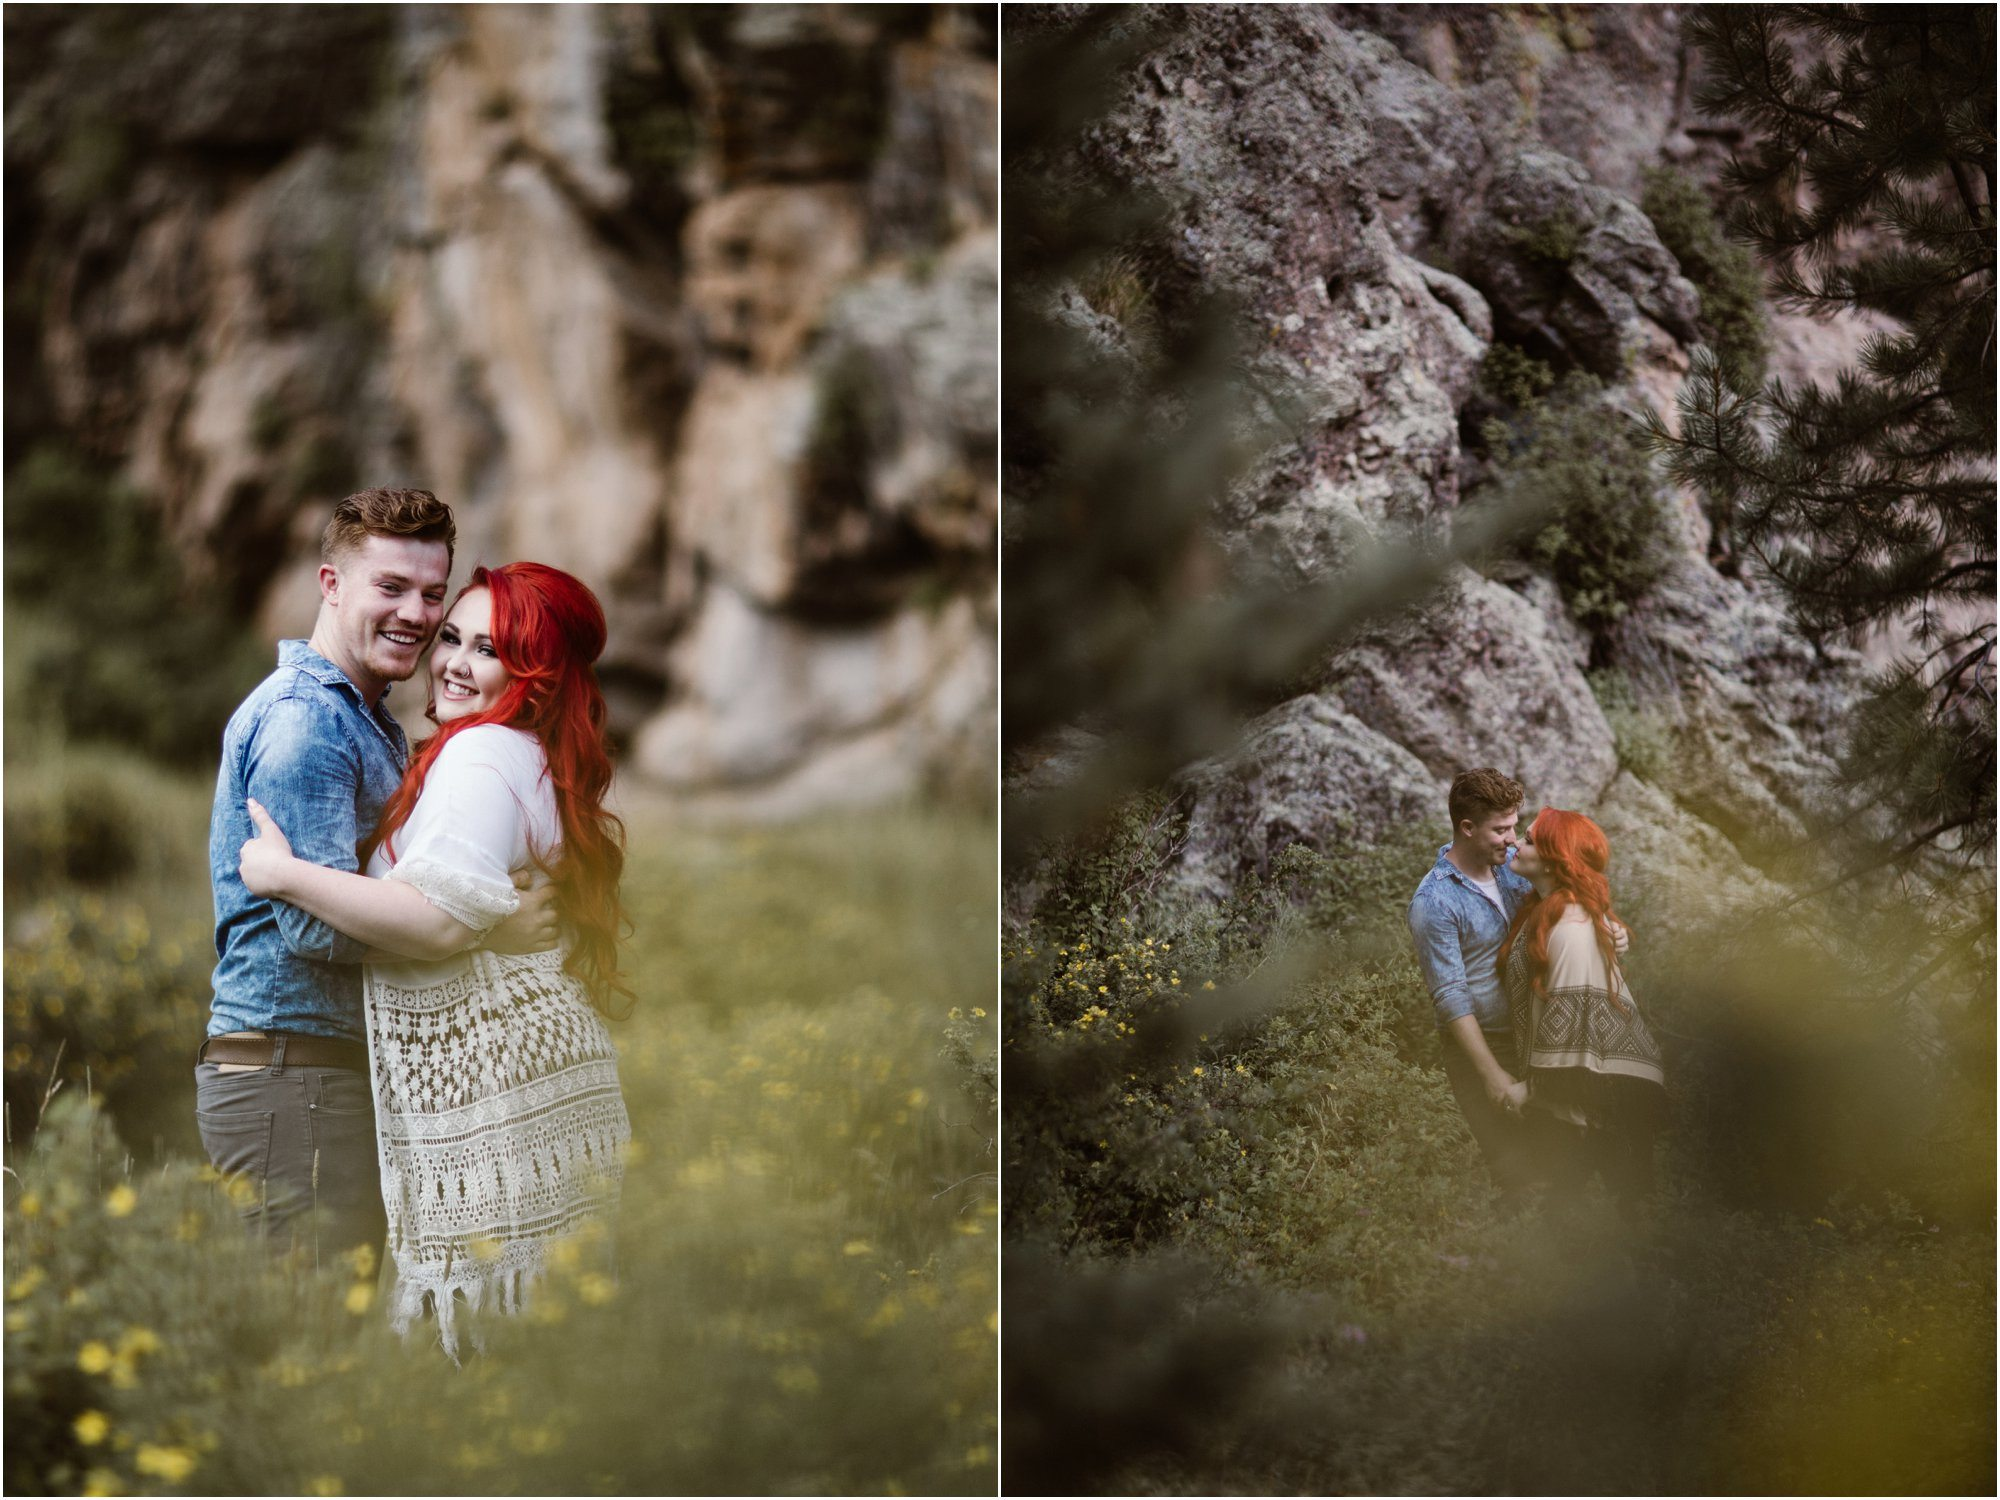 002Blue Rose Photography_ Albuquerque, Santa Fe, New Mexico wedding photographer_ engagement pictures